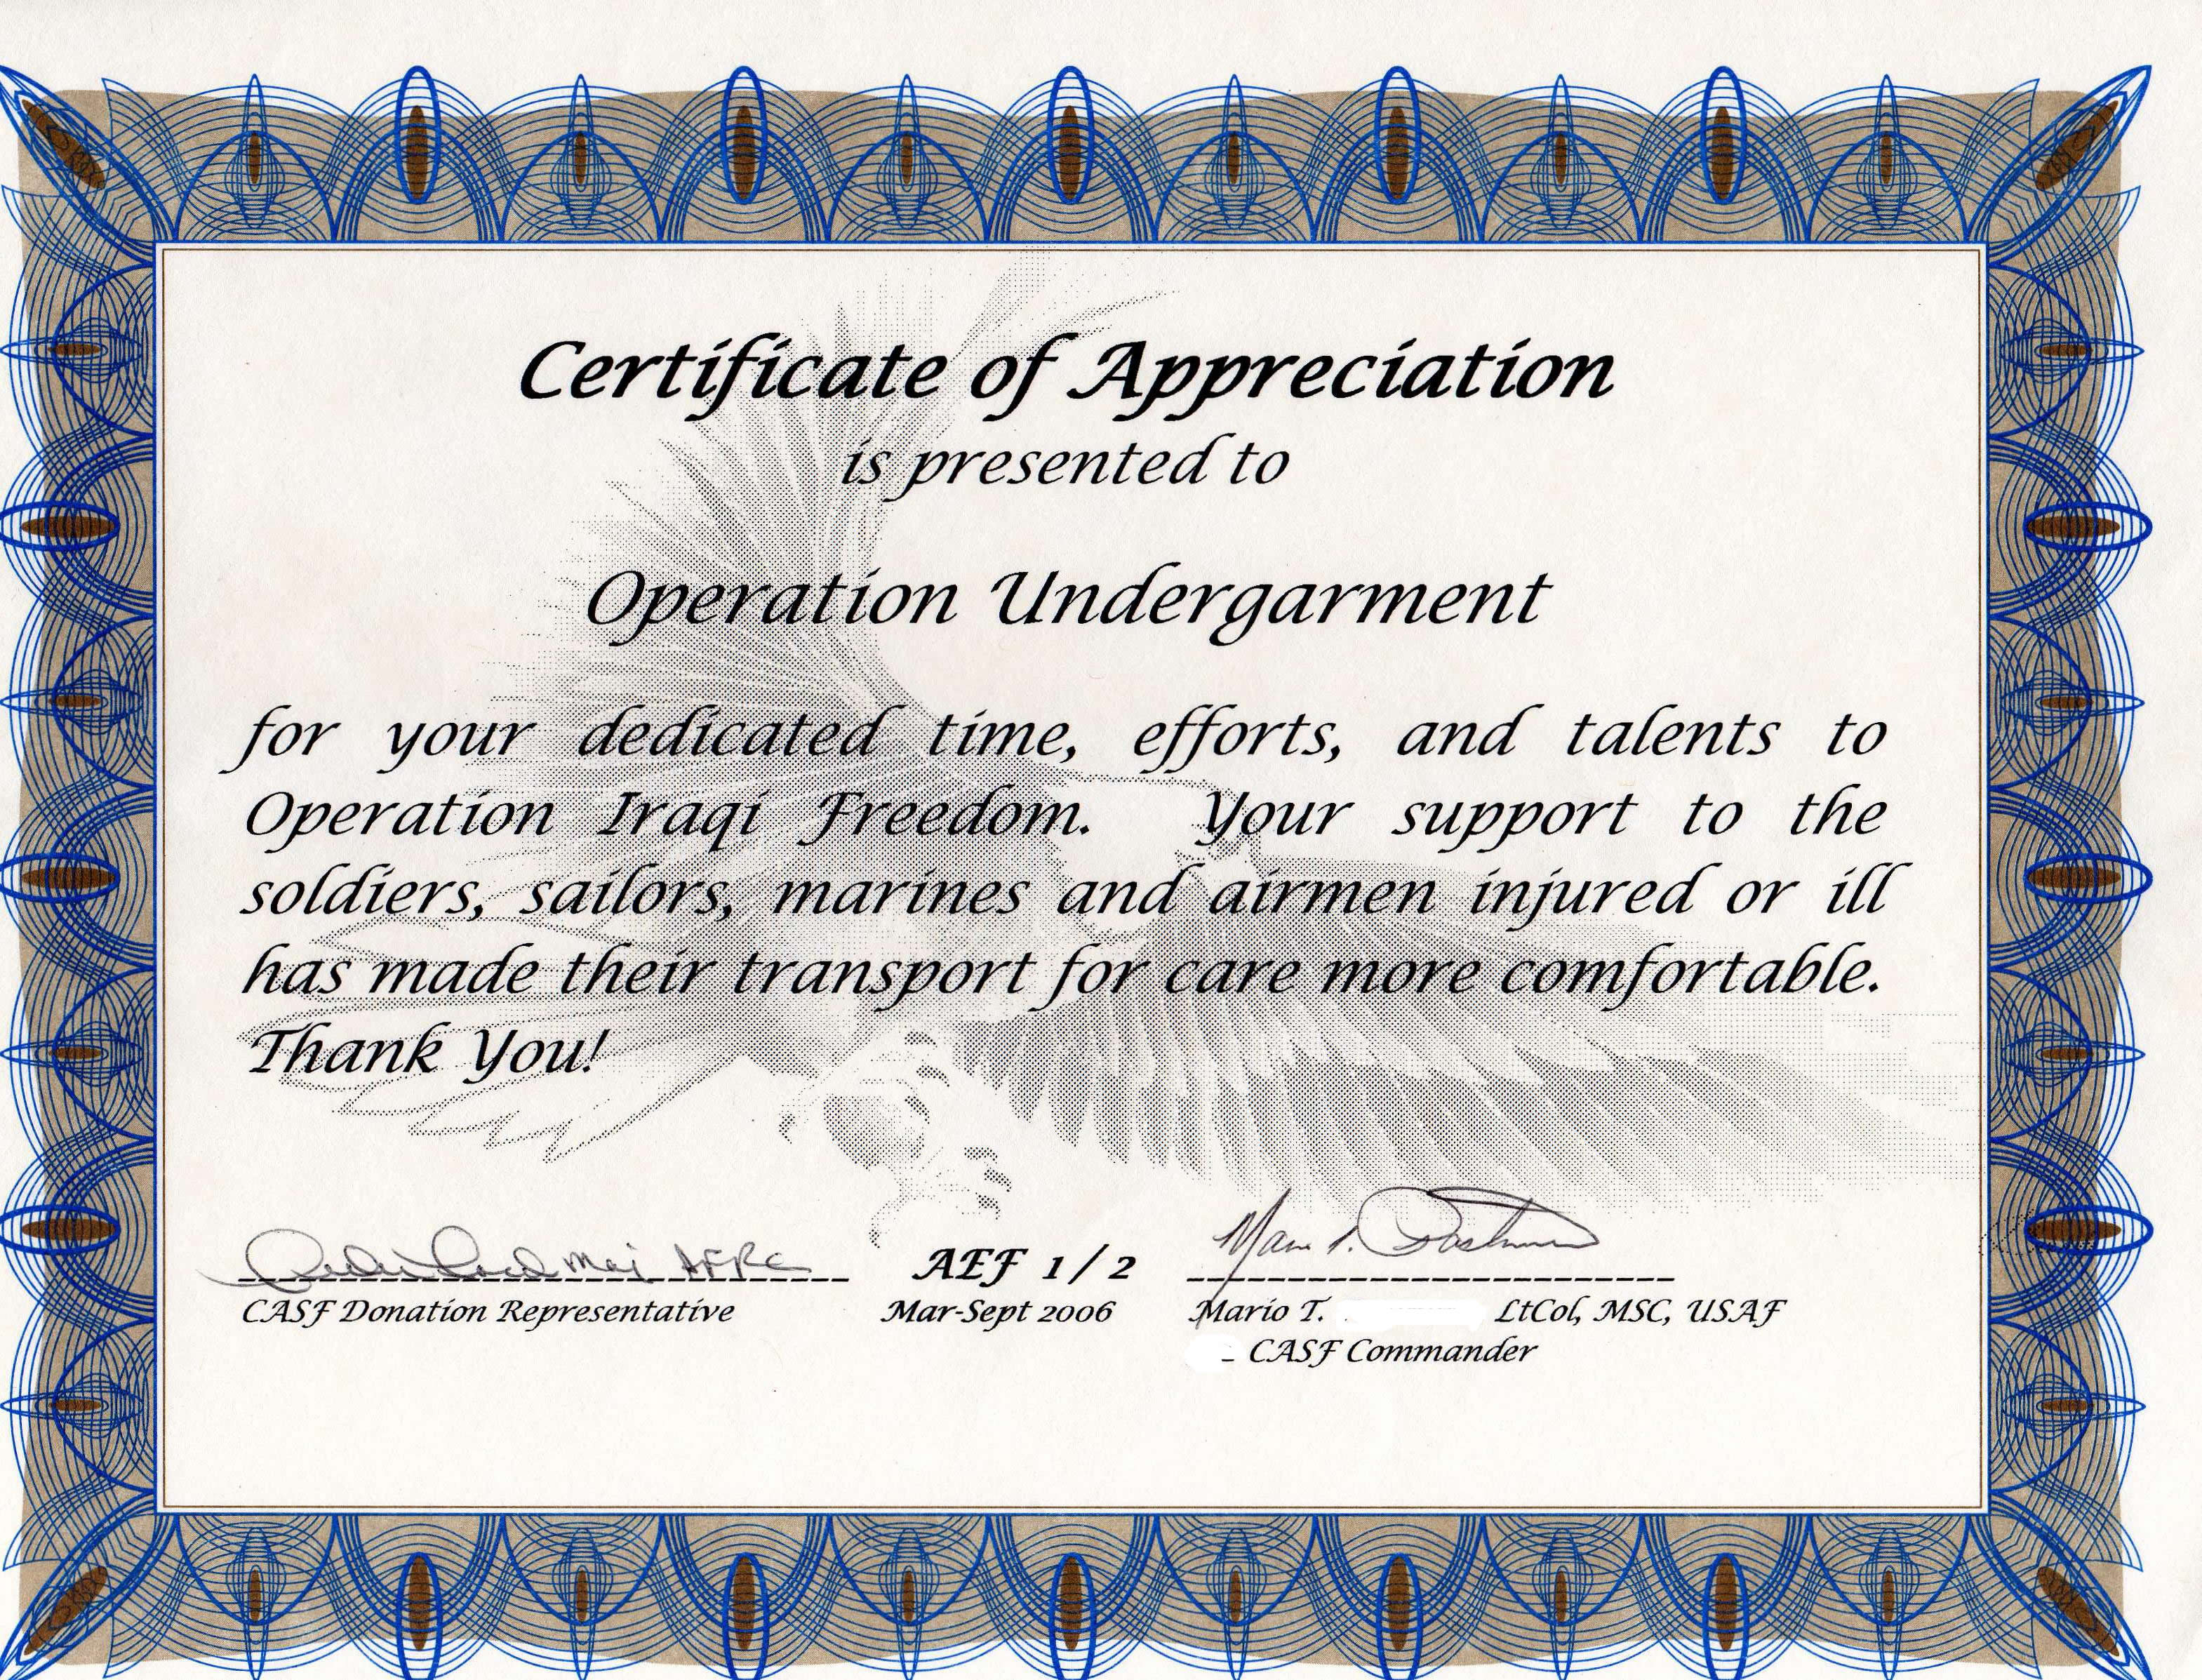 Sample Employee Appreciation Messages for Years of Service - oukas.info